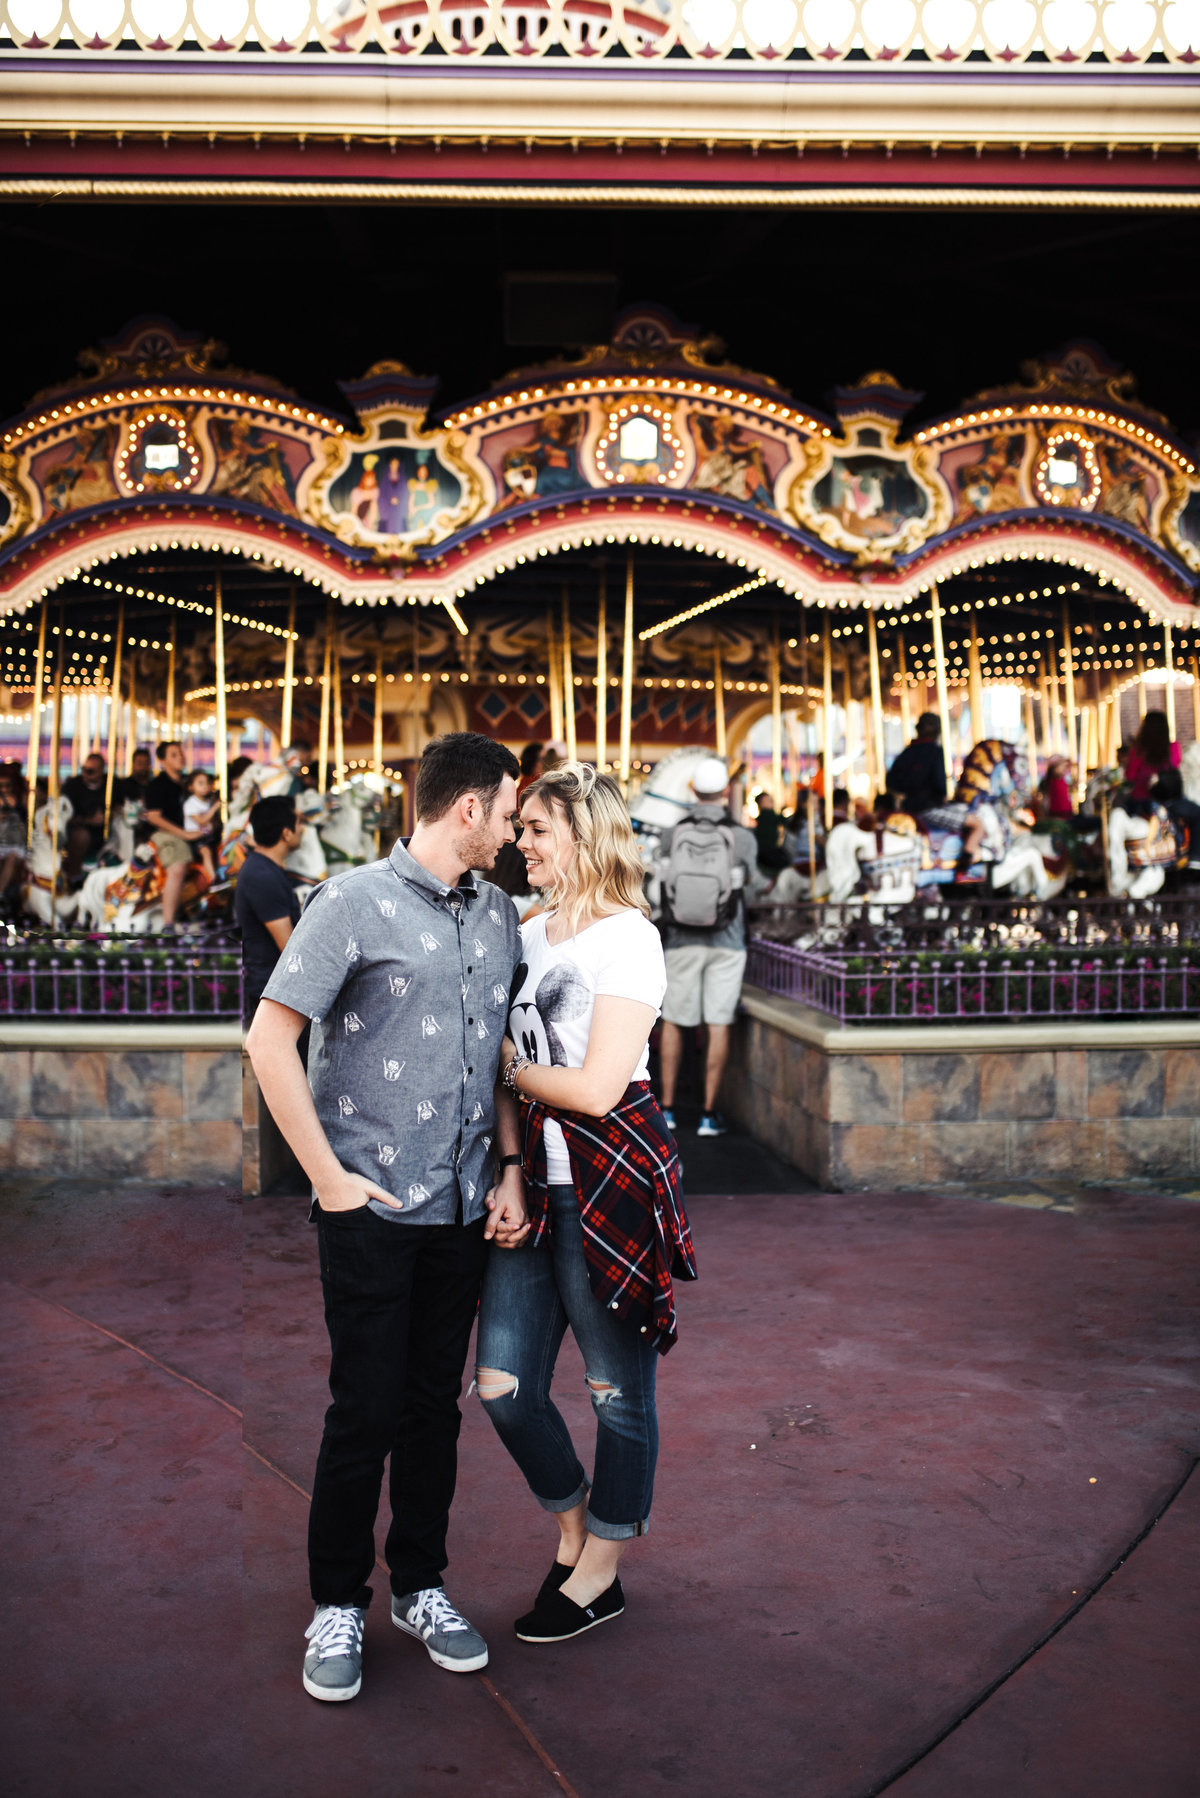 Ally & Brett's Disney Engagement Session (184 of 243)